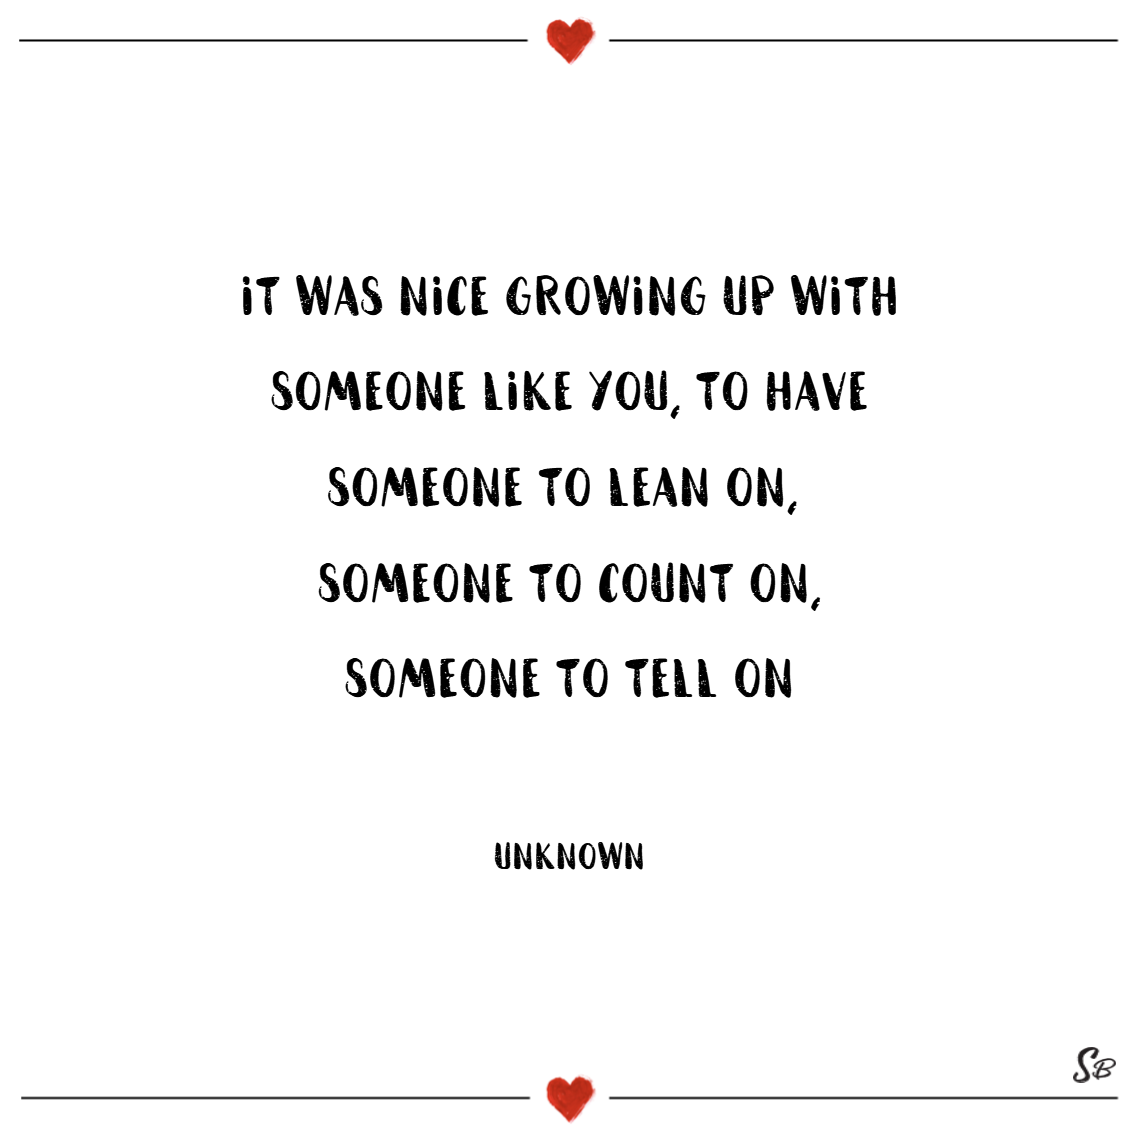 It was nice growing up with someone like you – someone to lean on, someone to count on… someone to tell on! – unknown